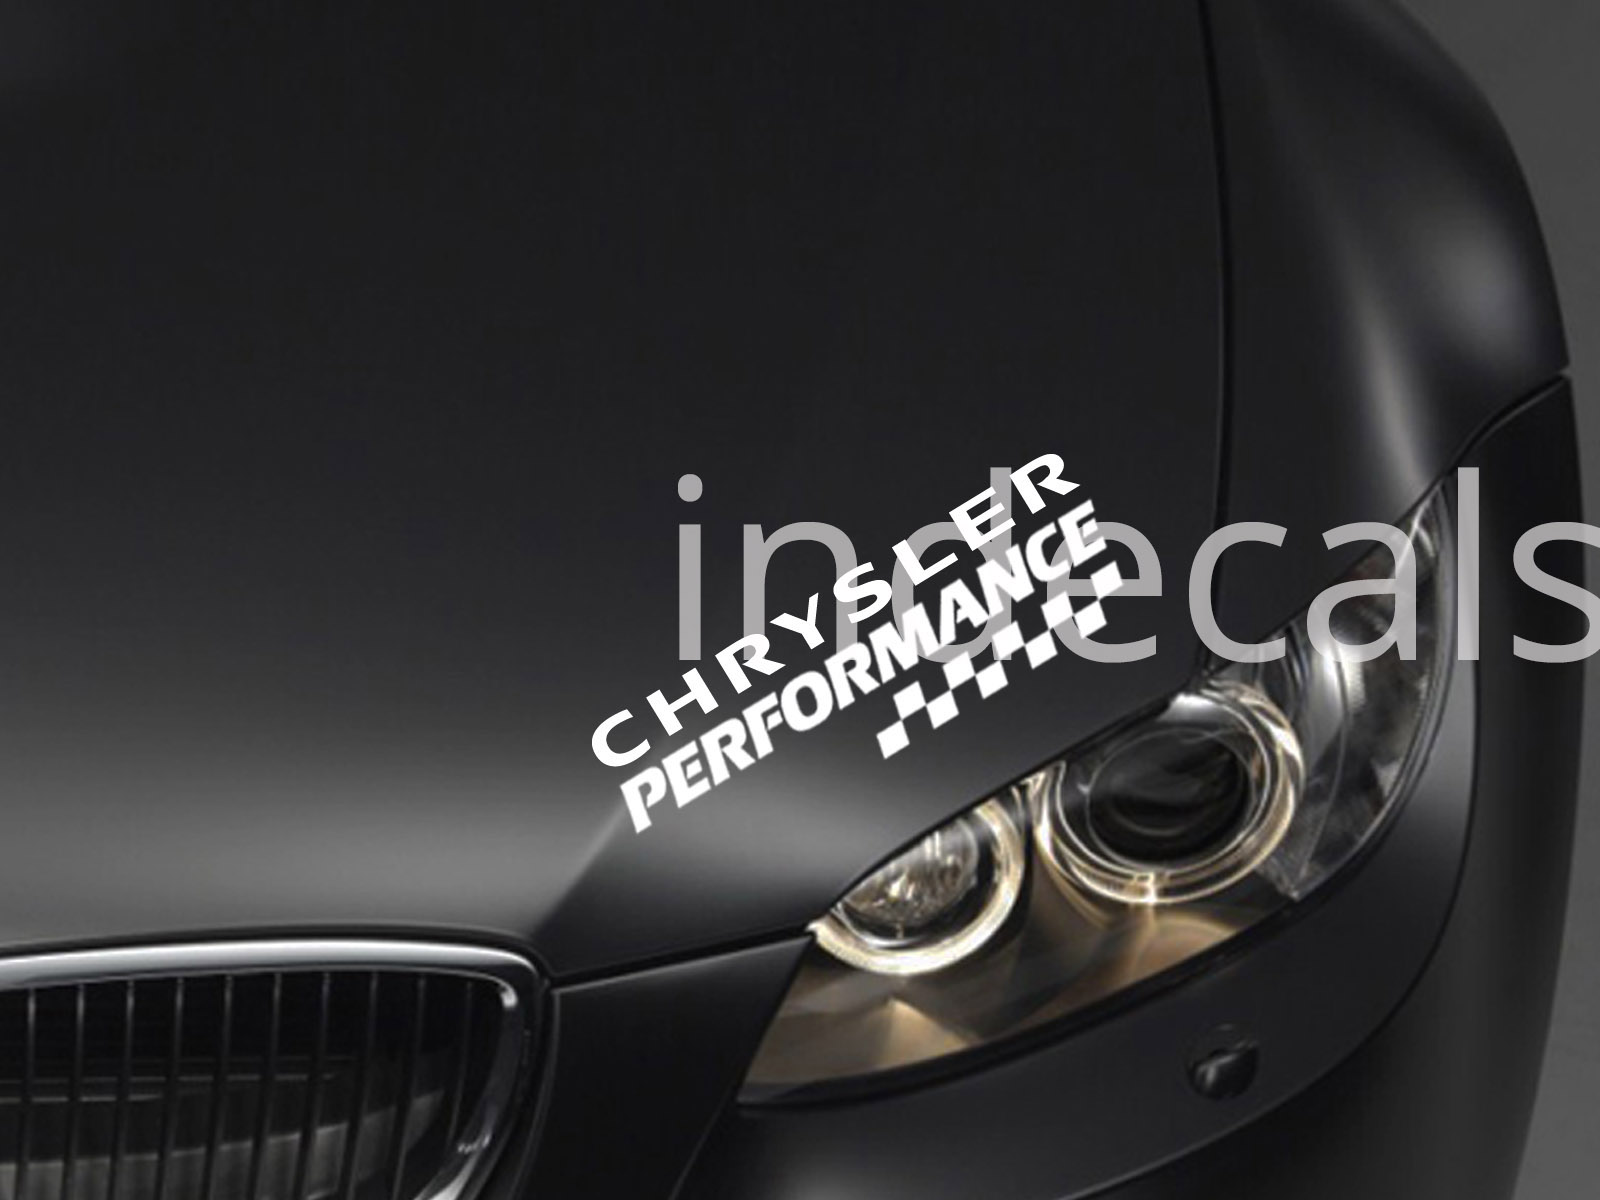 1 x Chrysler Performance Sticker for Eyebrow - White